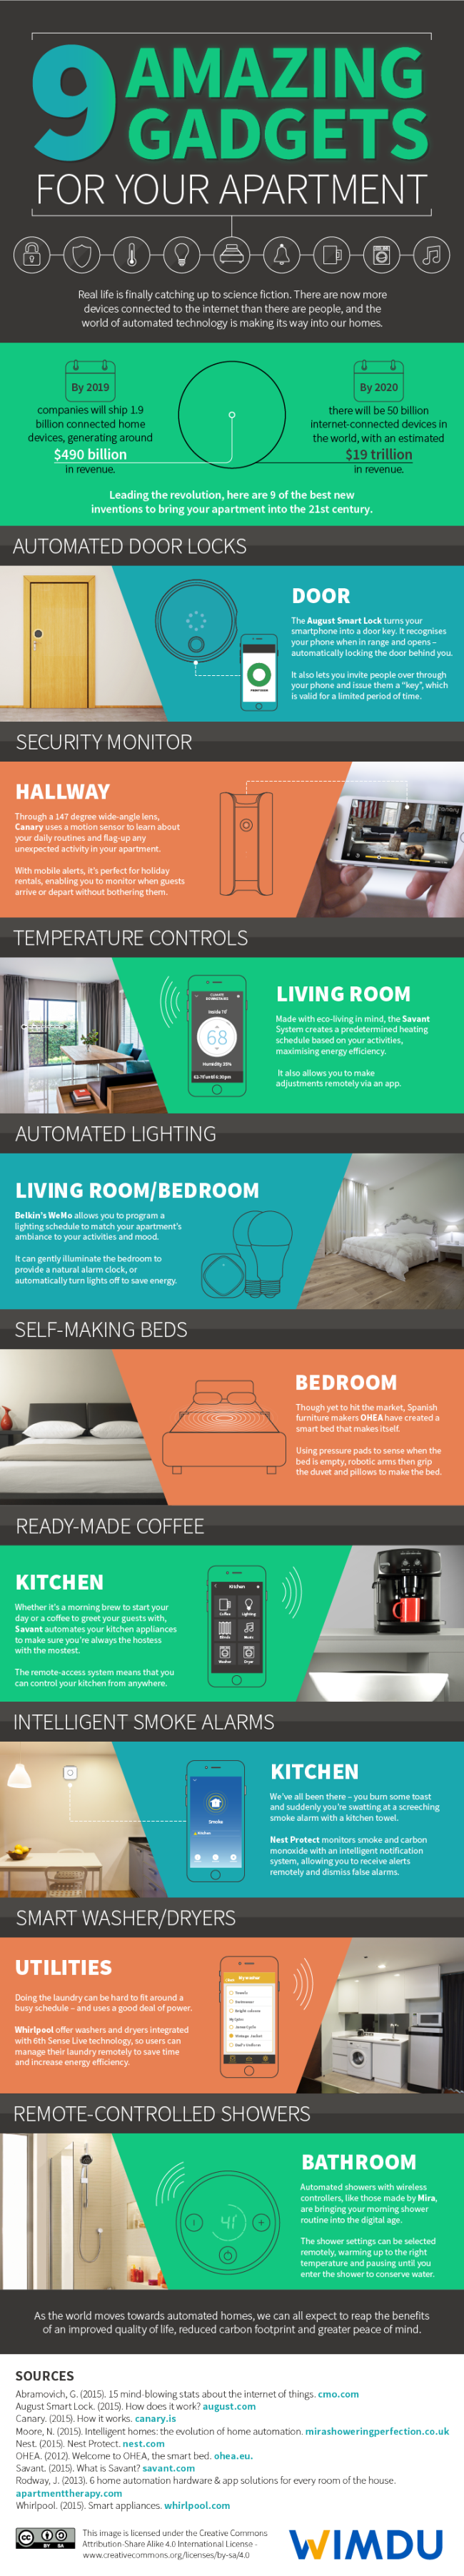 9 Amazing Gadgets for your Apartment